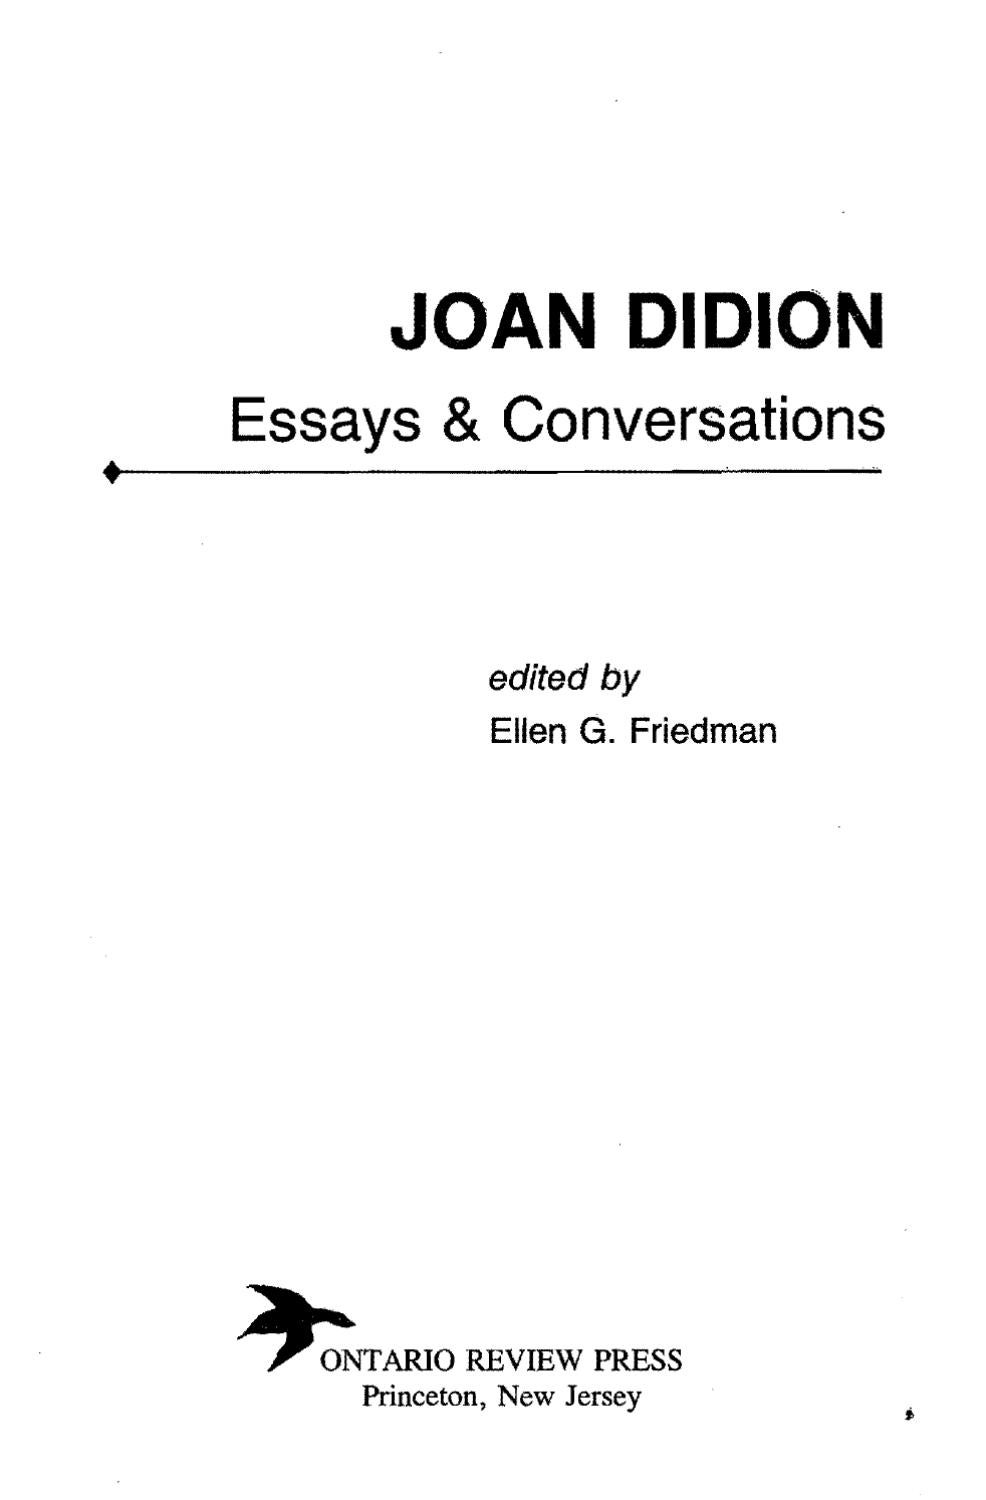 Topic: Joan Didion Online Essays – 181105 | ColdCon